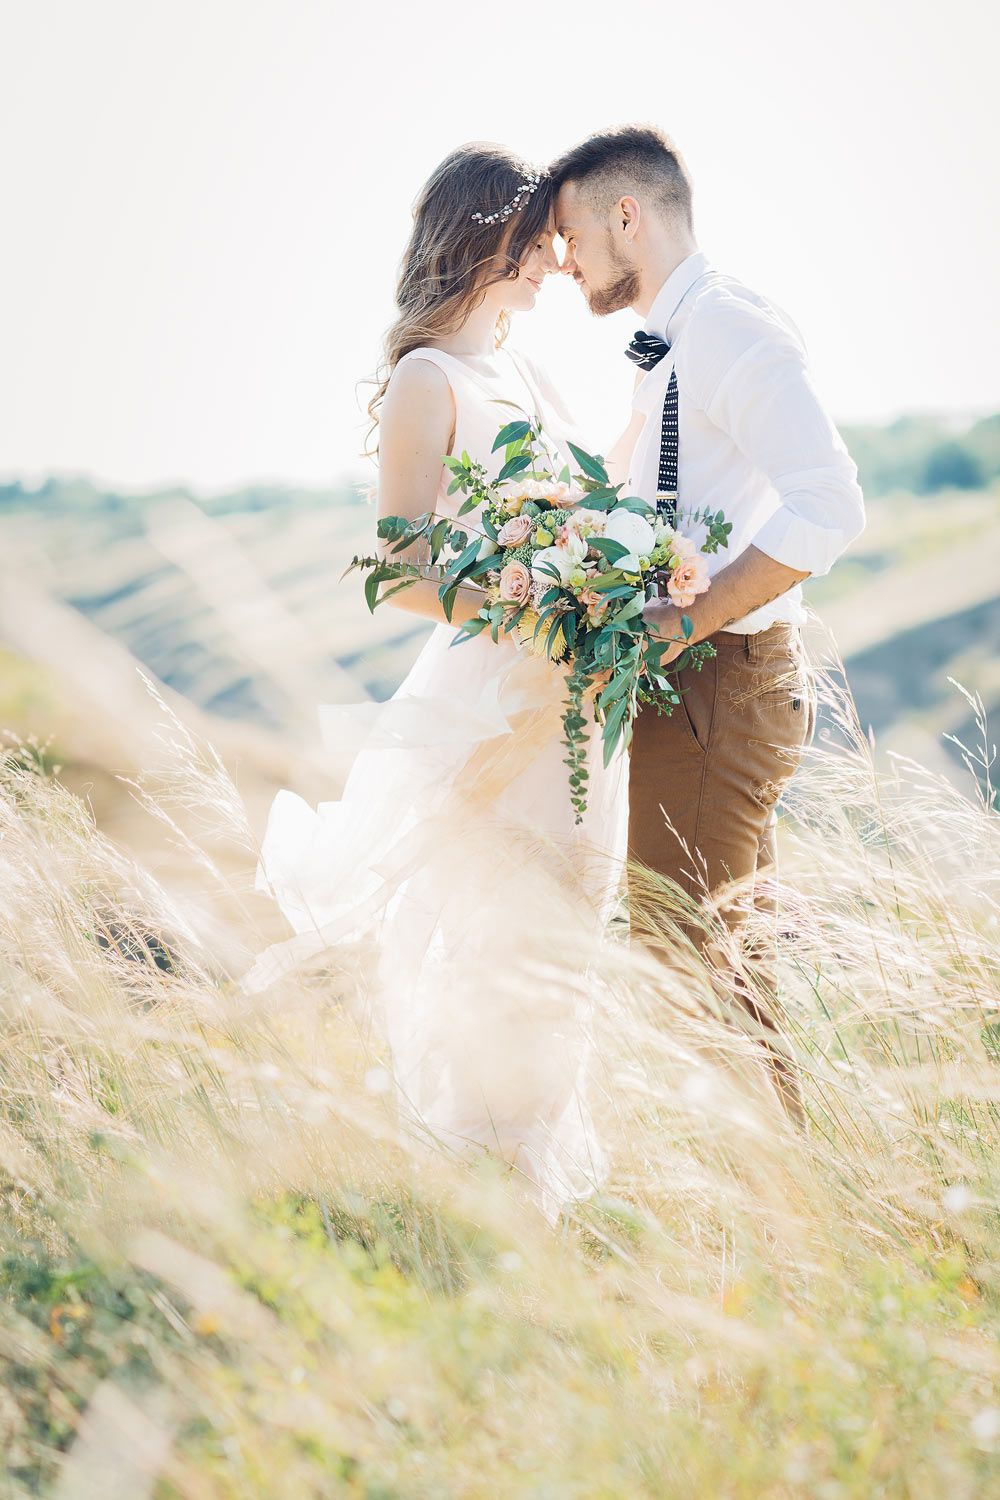 Are you planning an outdoor wedding? You'll find tips for